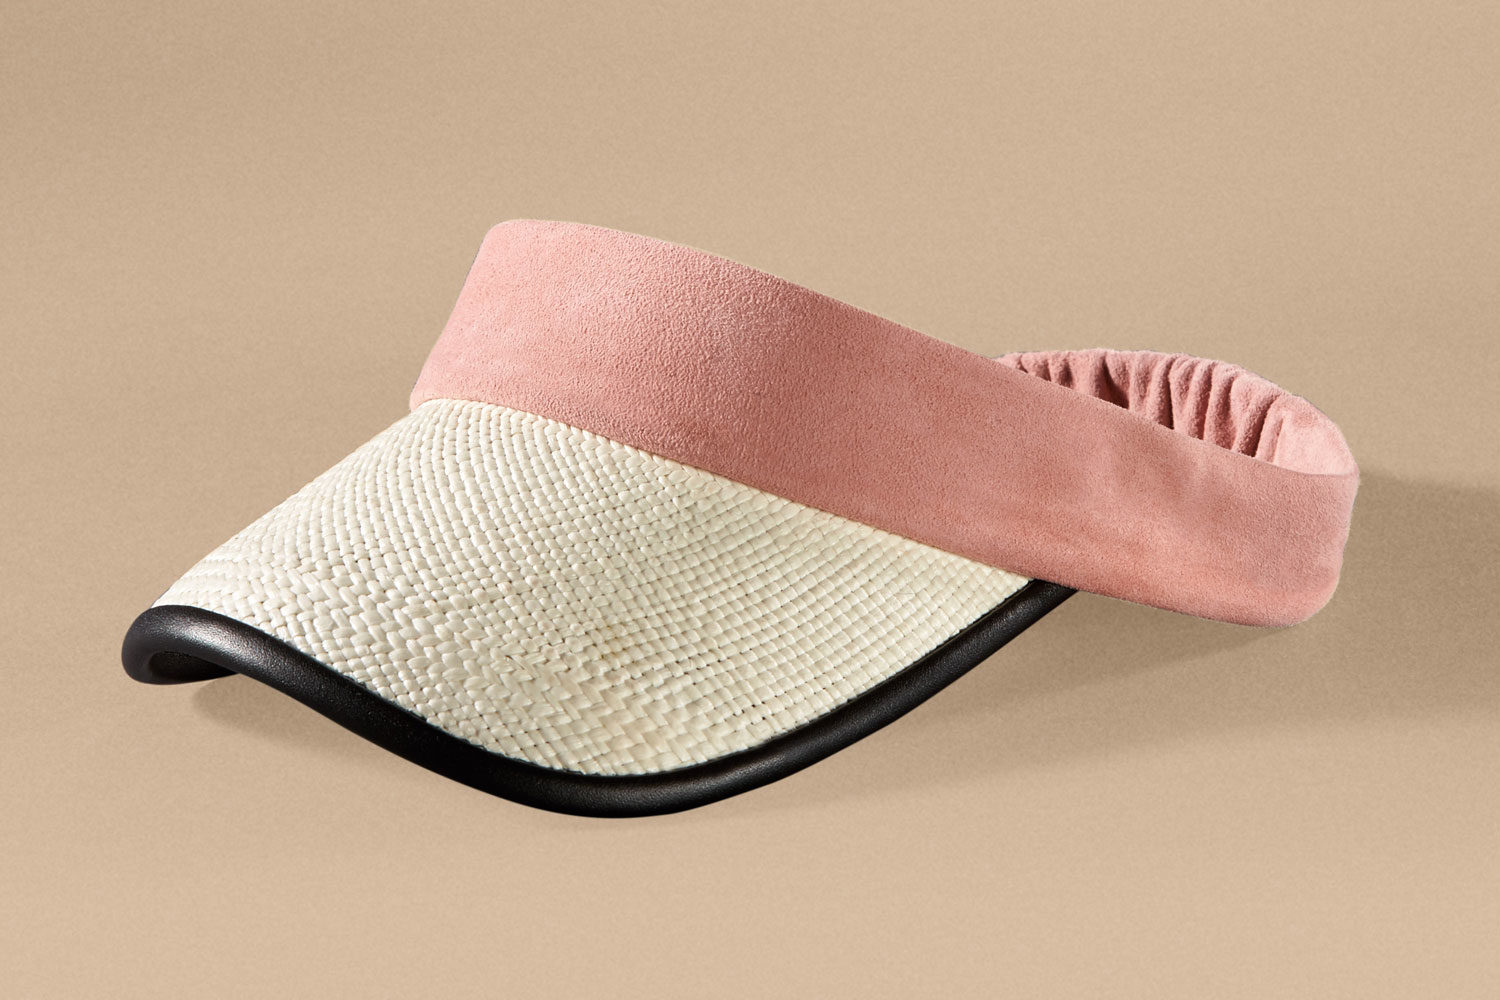 Revel - Large Visors - White & Pink